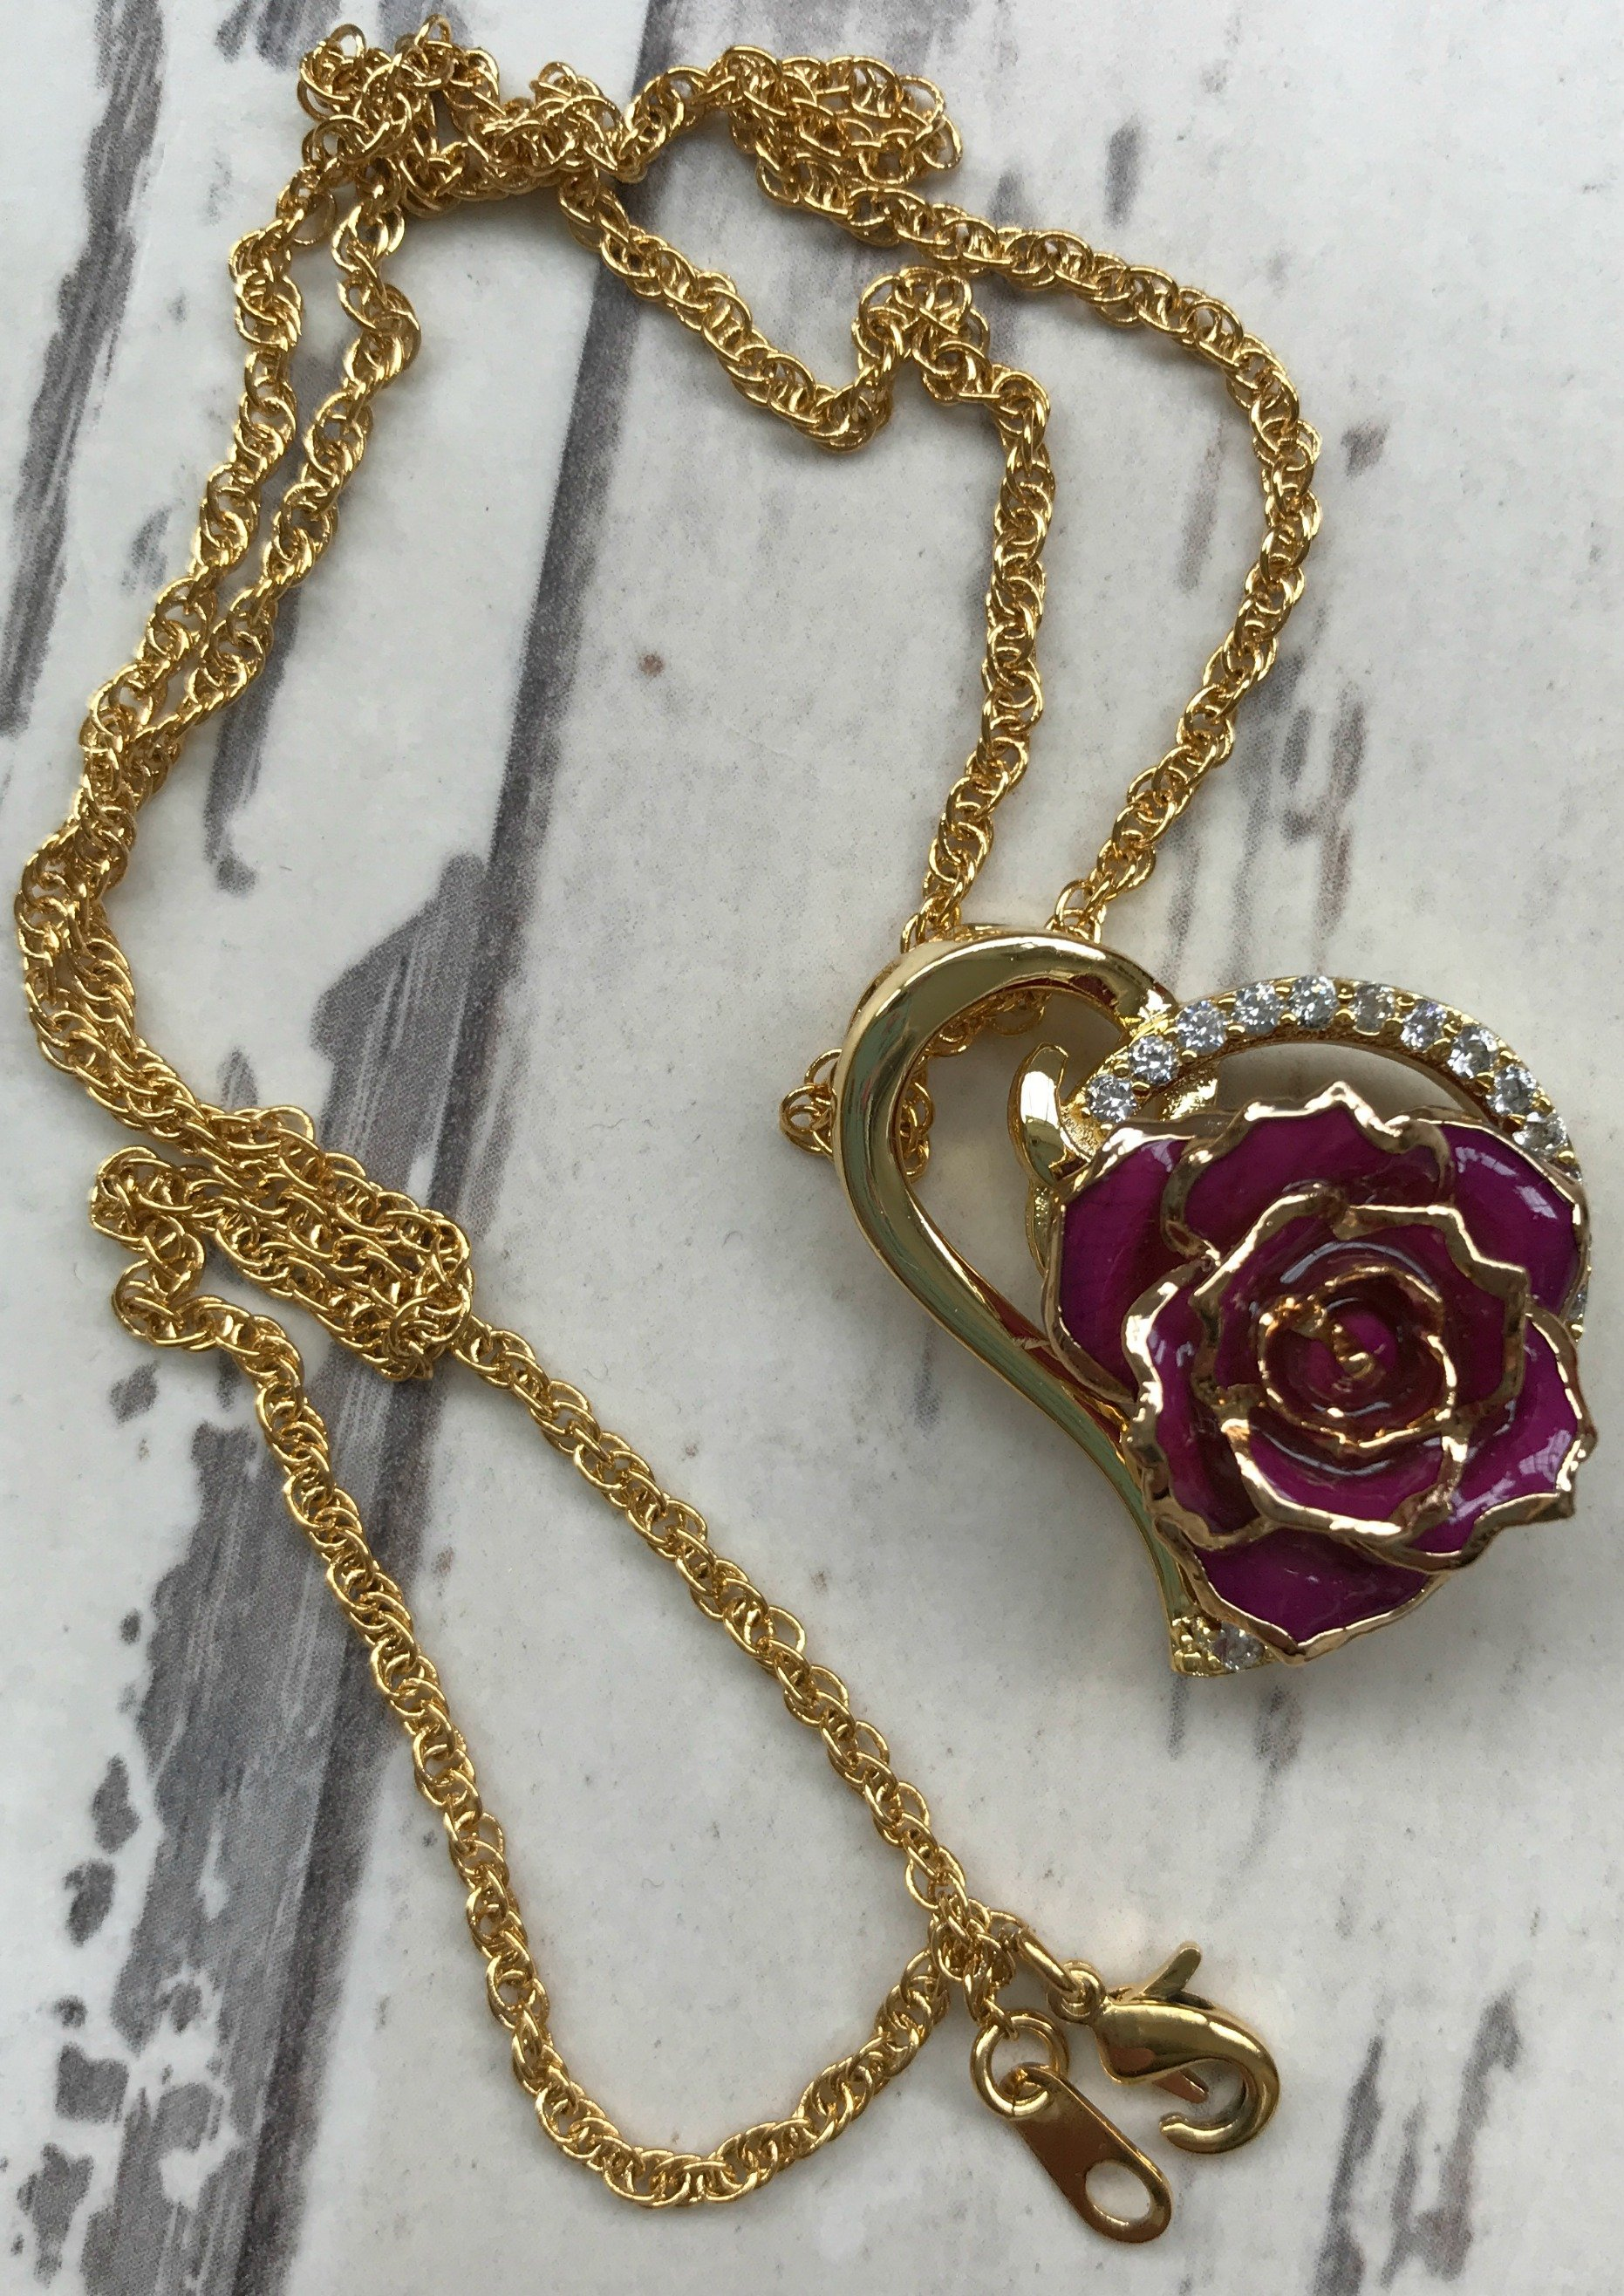 The Eternity Rose - purple rose heart pendant